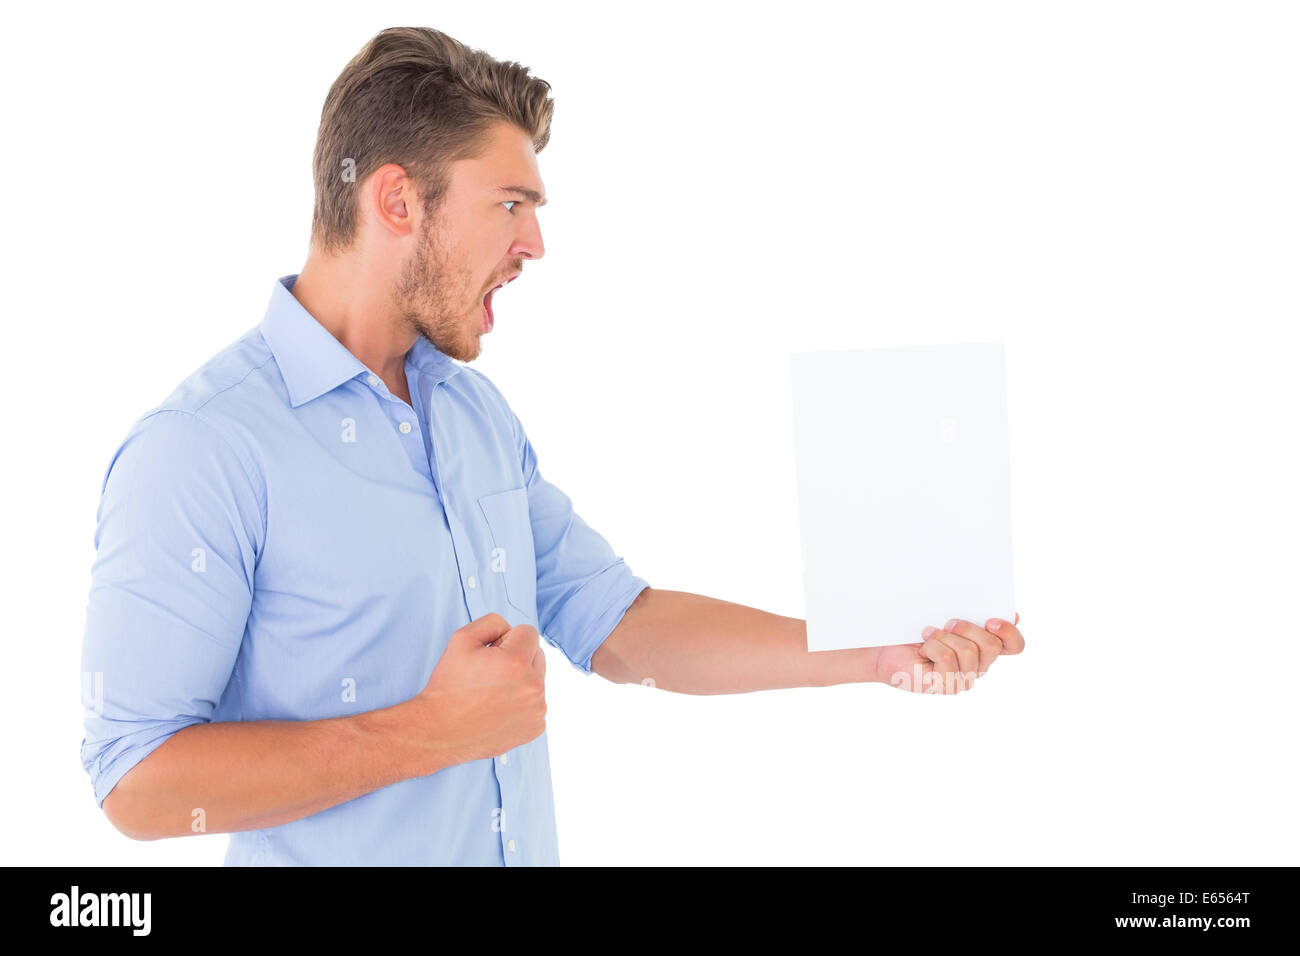 Angry man looking at page - Stock Image